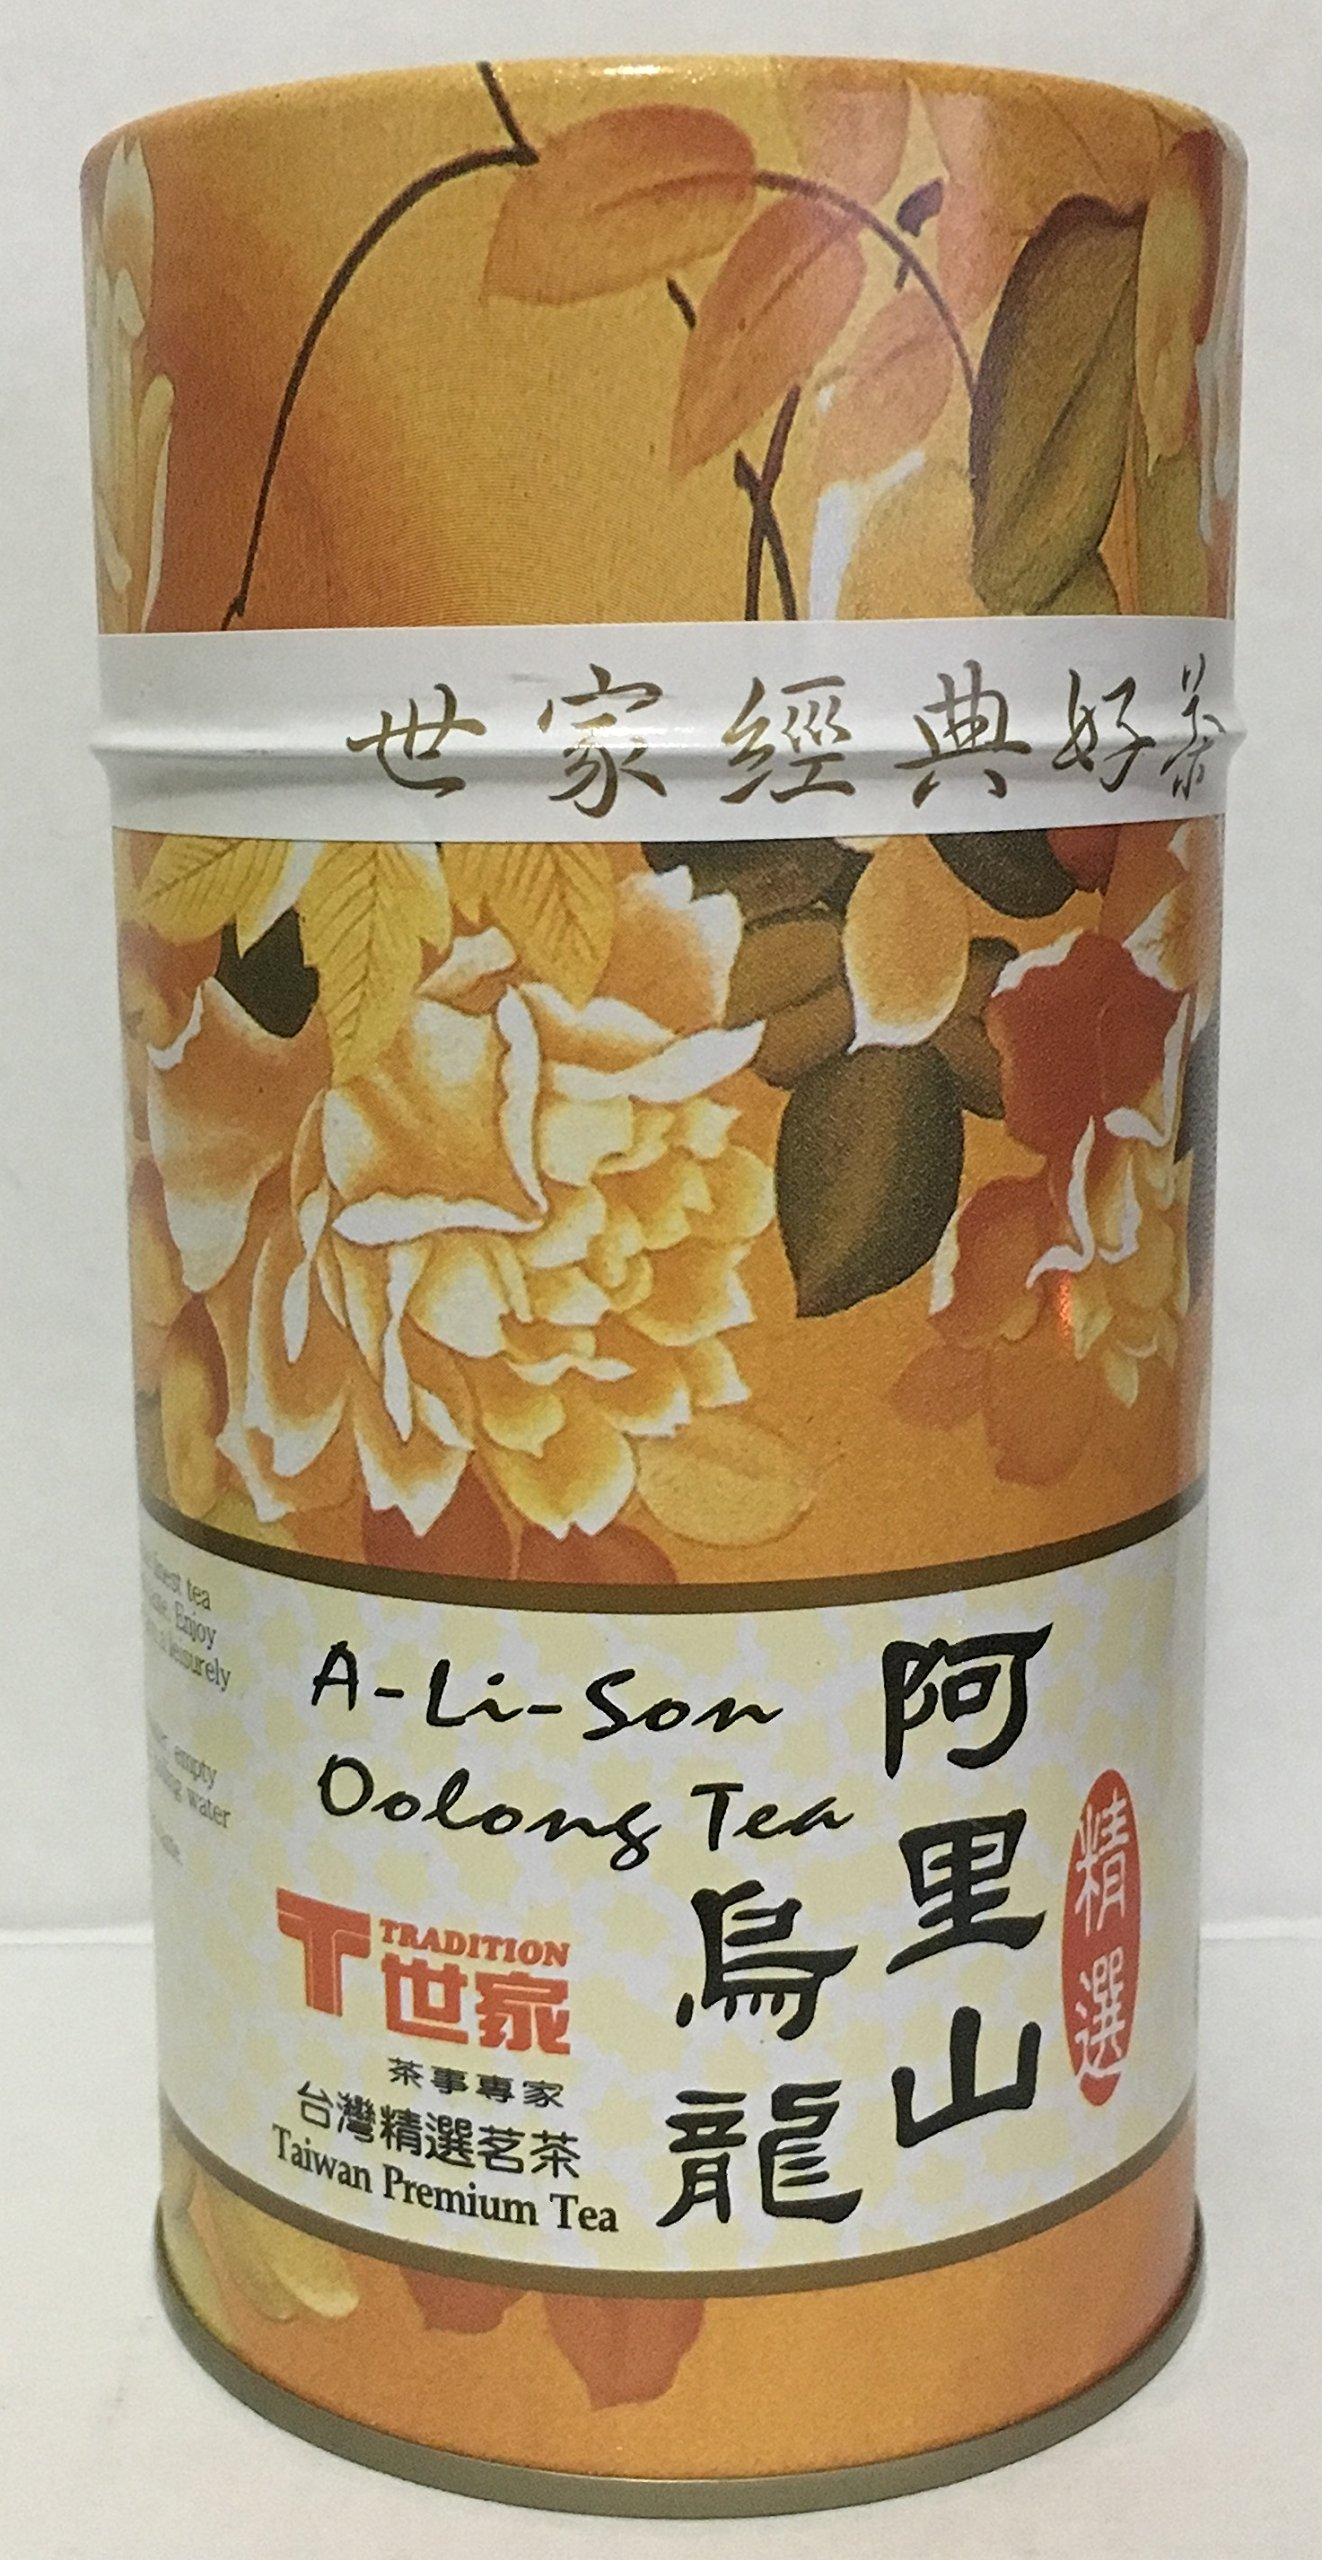 100gr Tradition A - Li - Son Oolong Tea, Taiwan Premium, Pack of 1